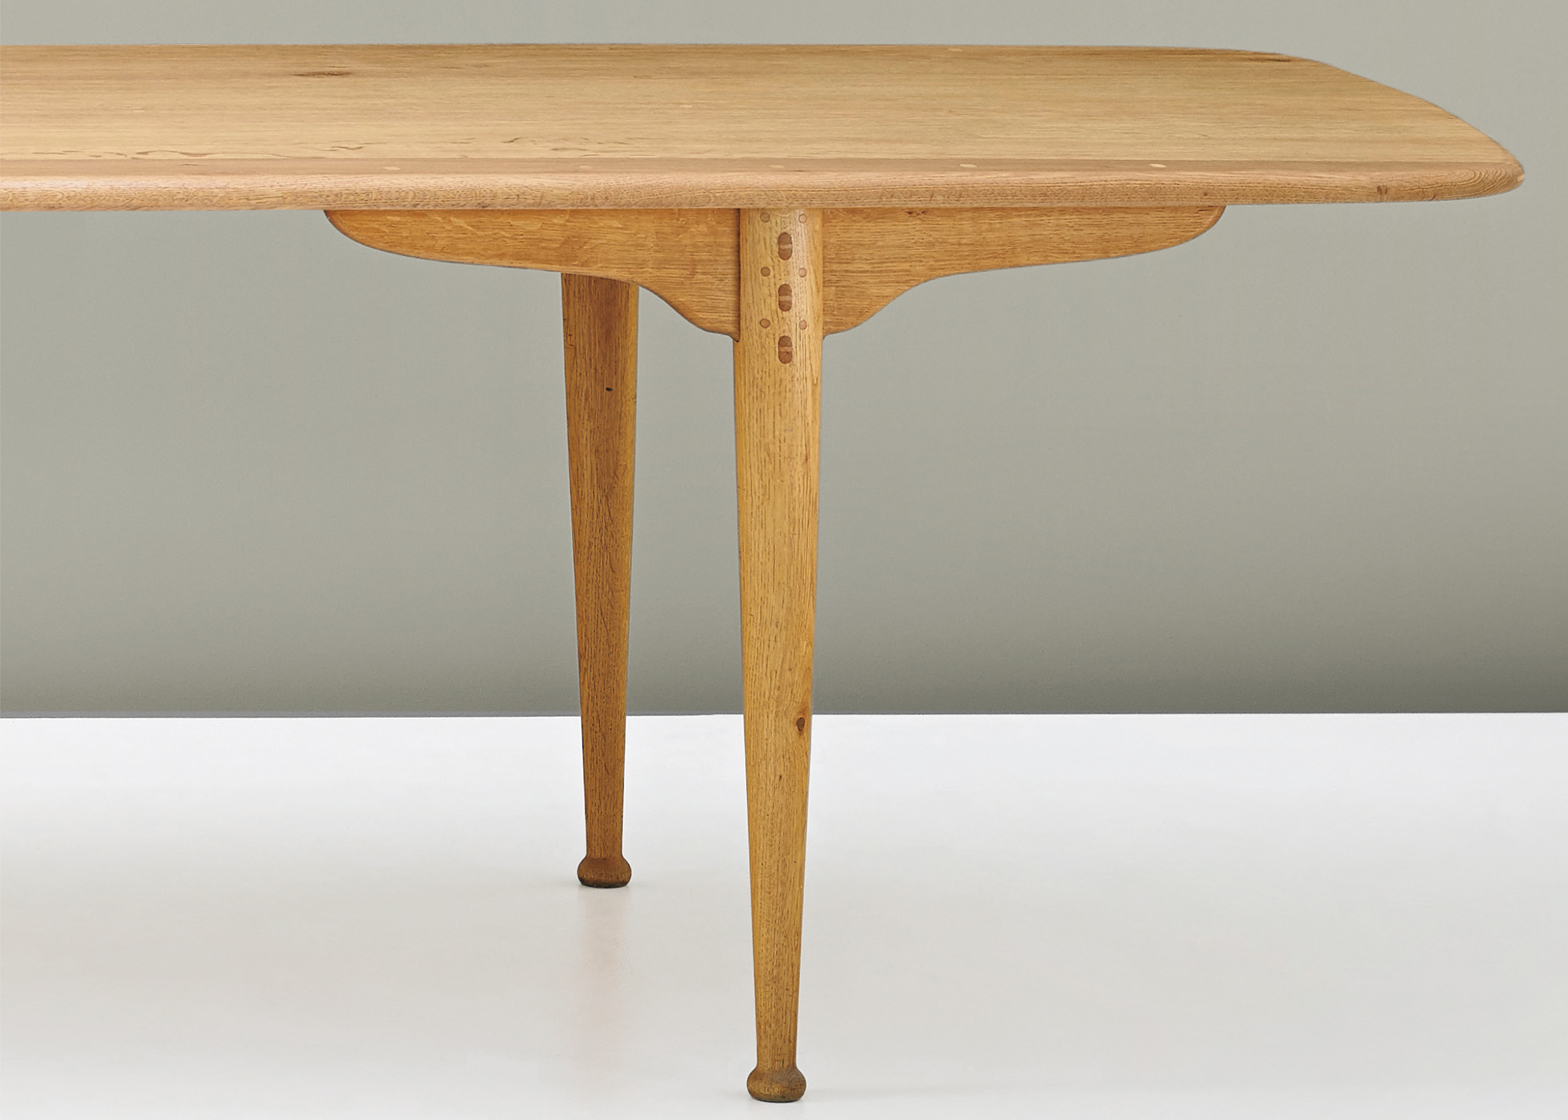 Peder Moos Table Breaks Auction Record For Most Expensive Piece Of Nordic  Design